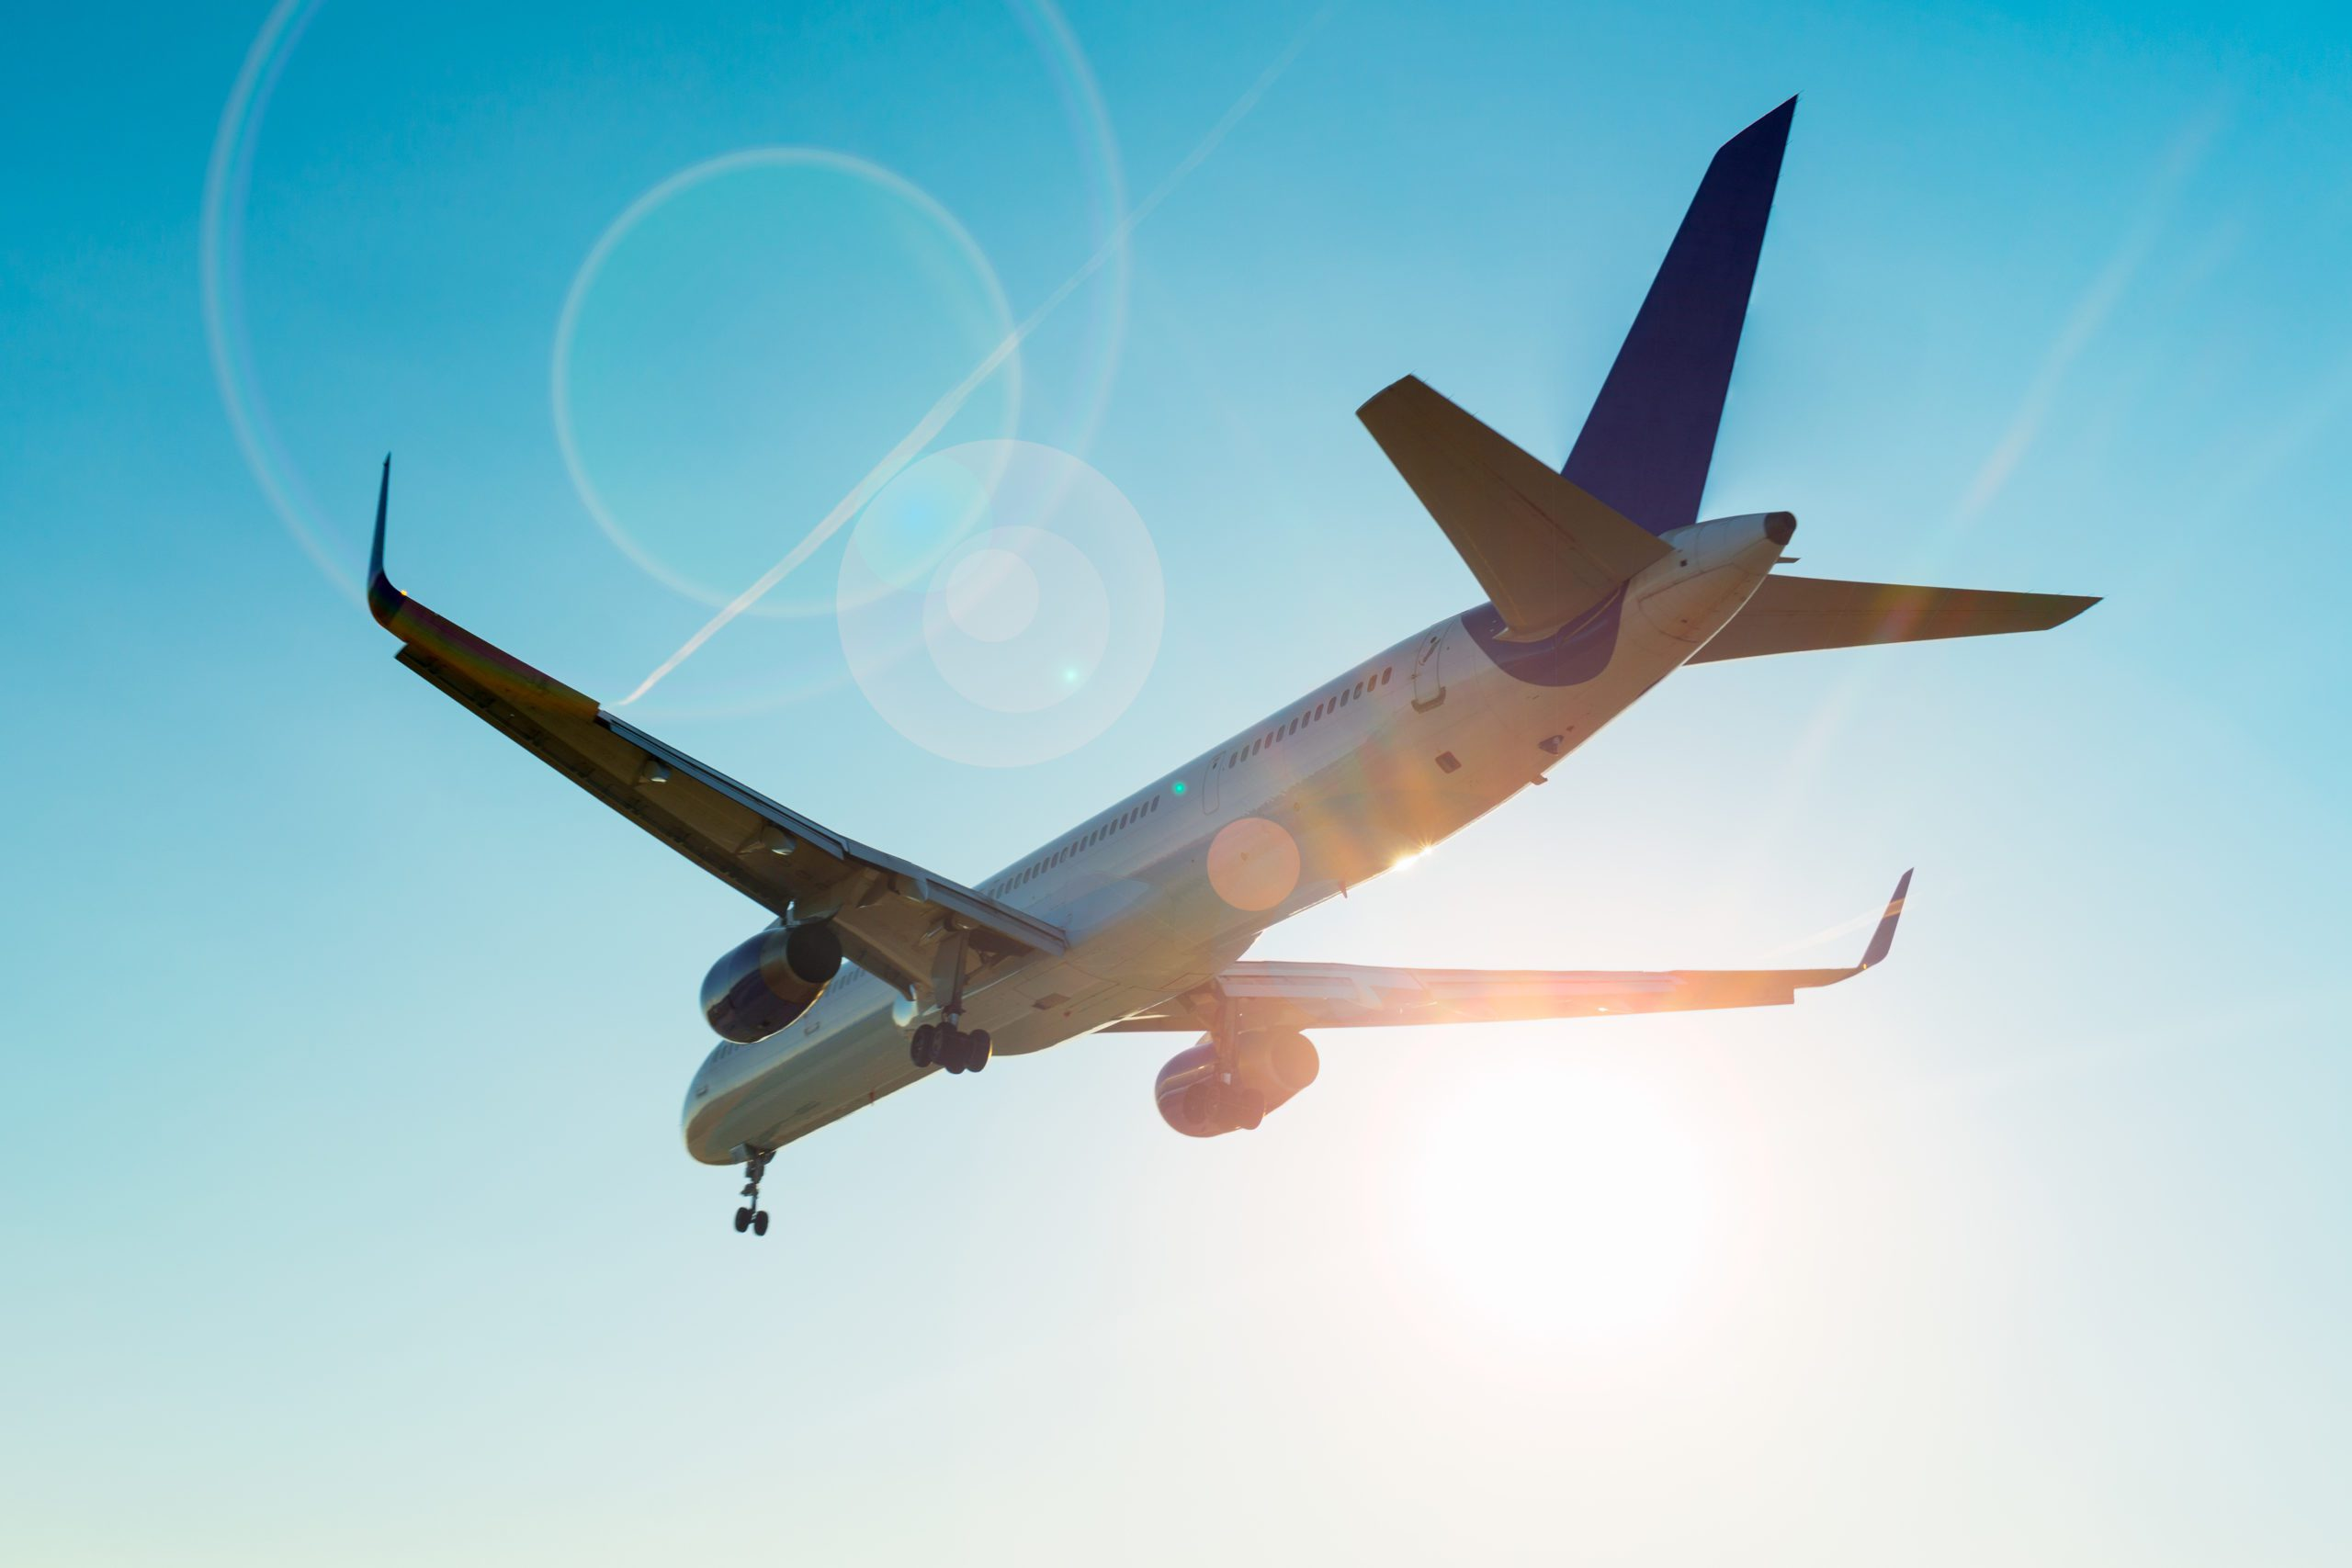 Airplane and sunbeam with lens flare effect on blue sky background